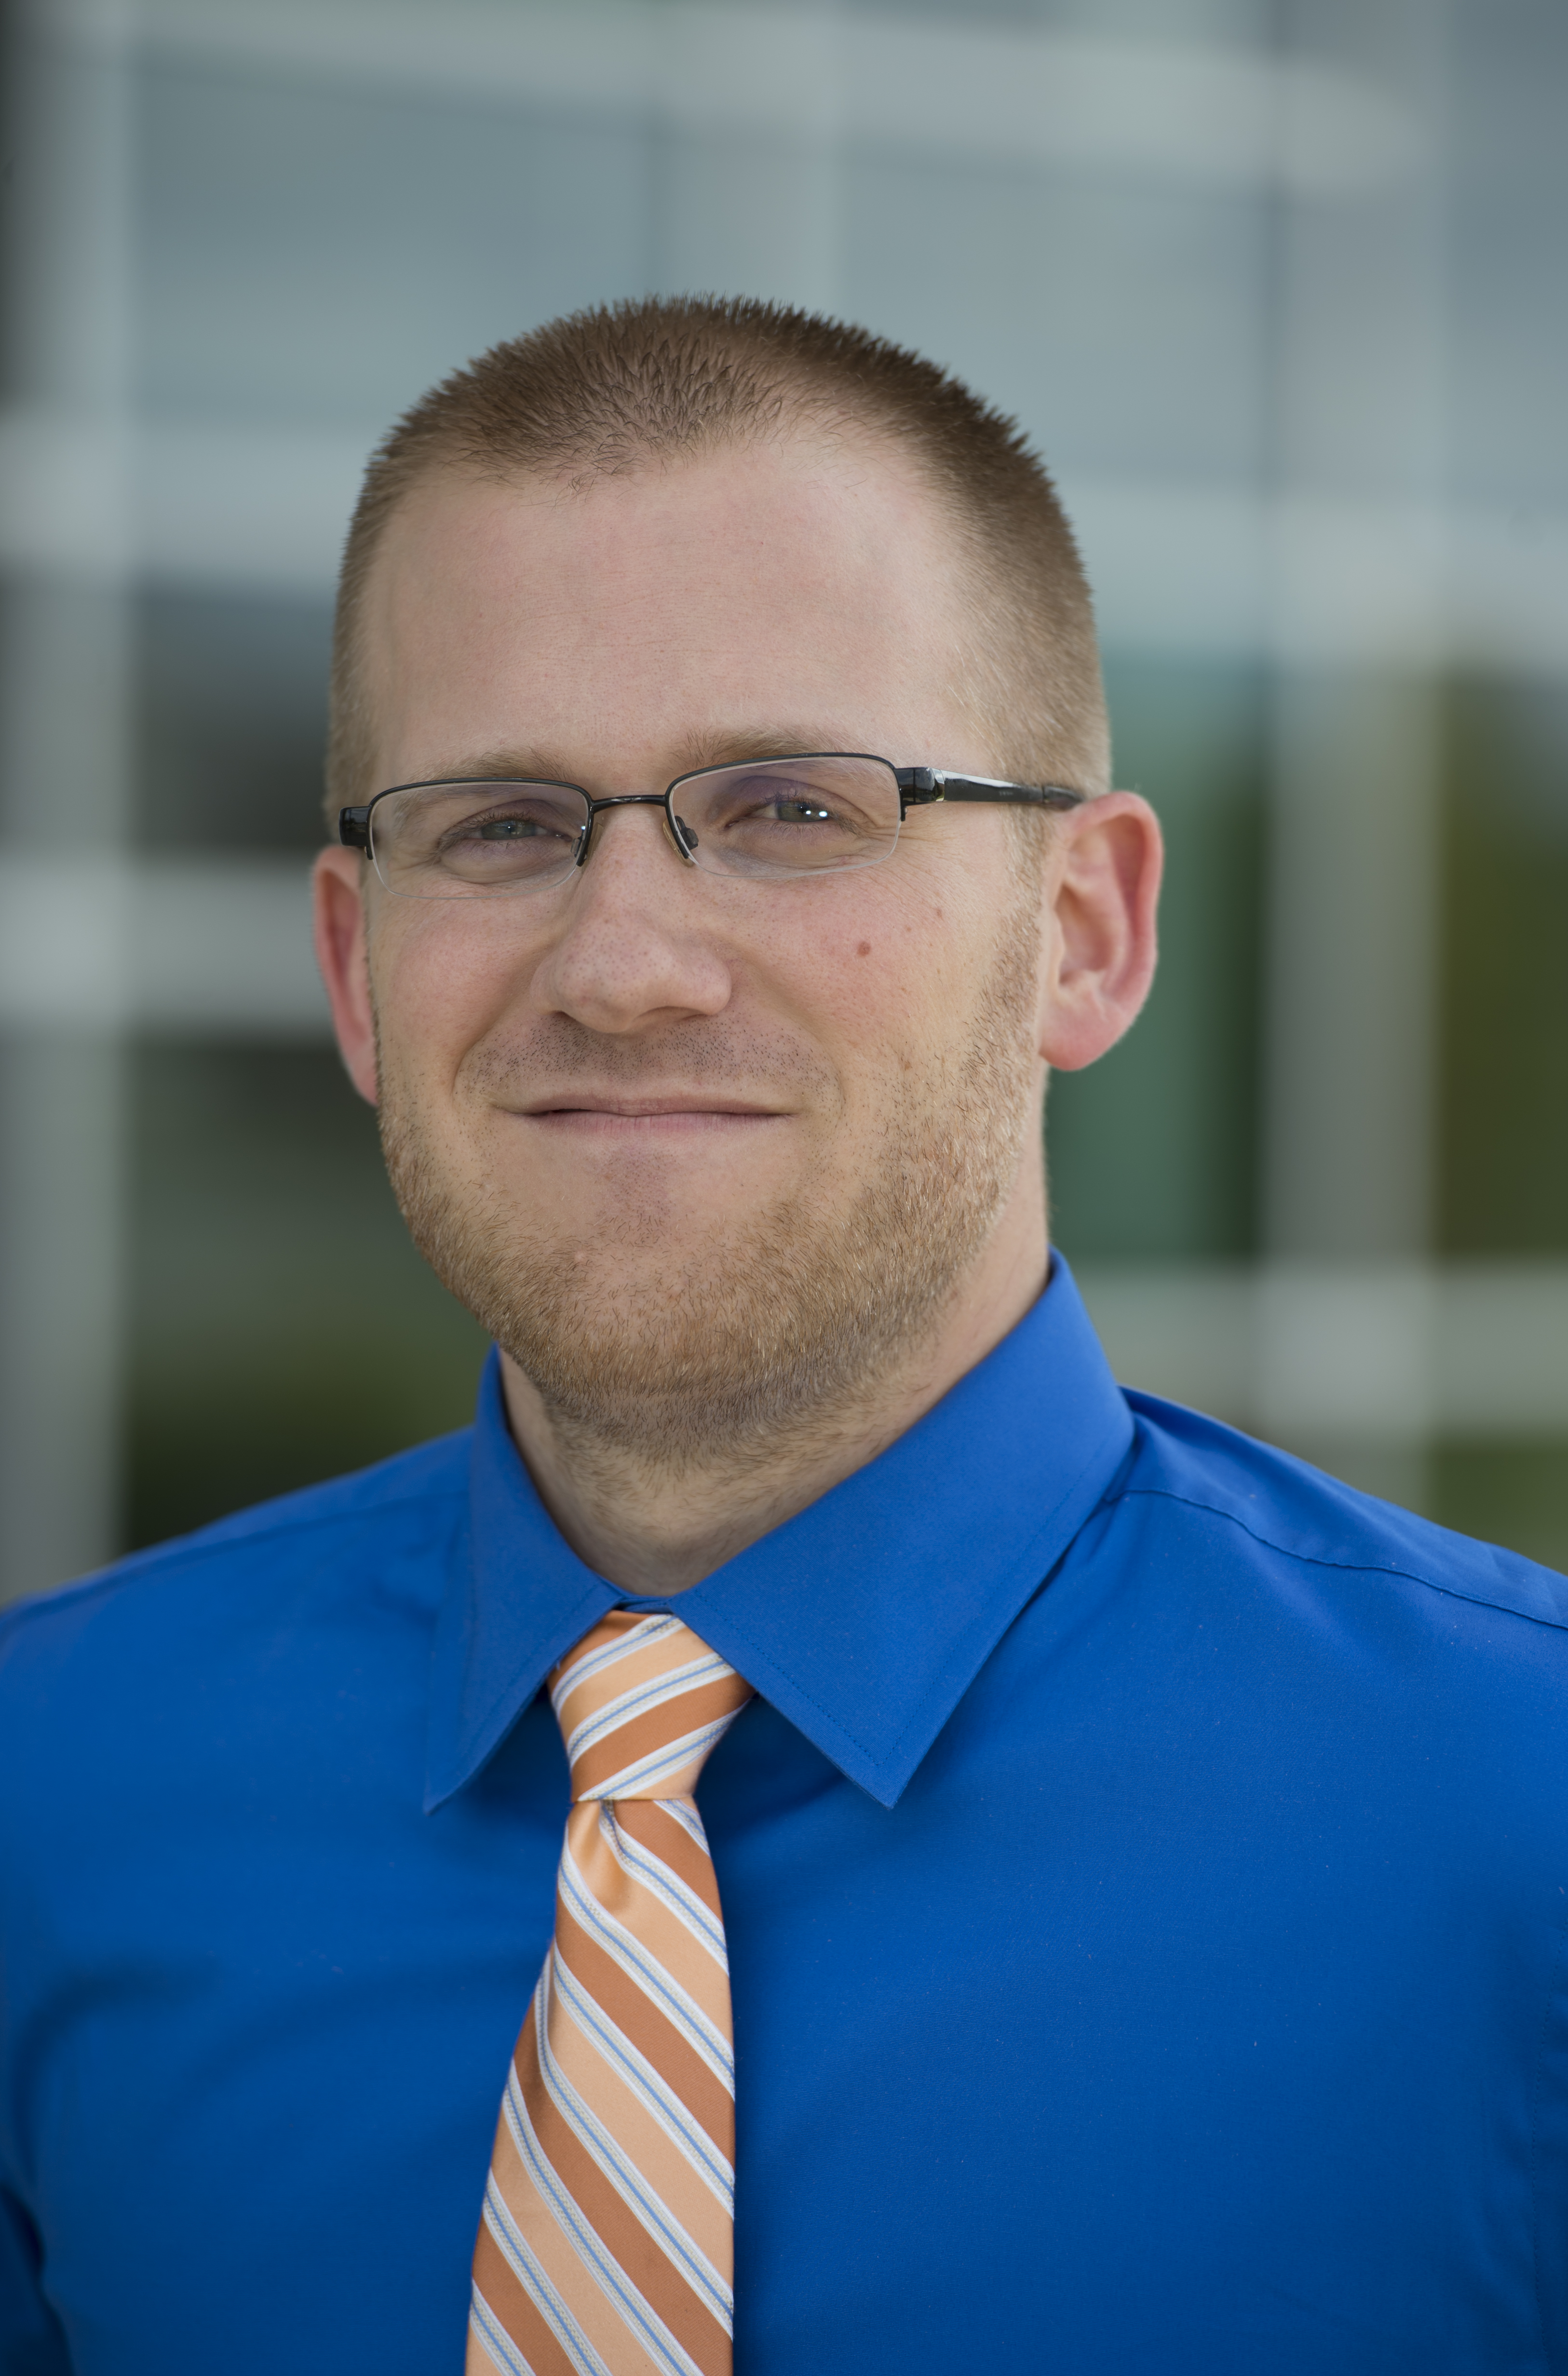 Ched Spellman, Ph.D., Assistant Professor of Bible named Director of Online Bible programs